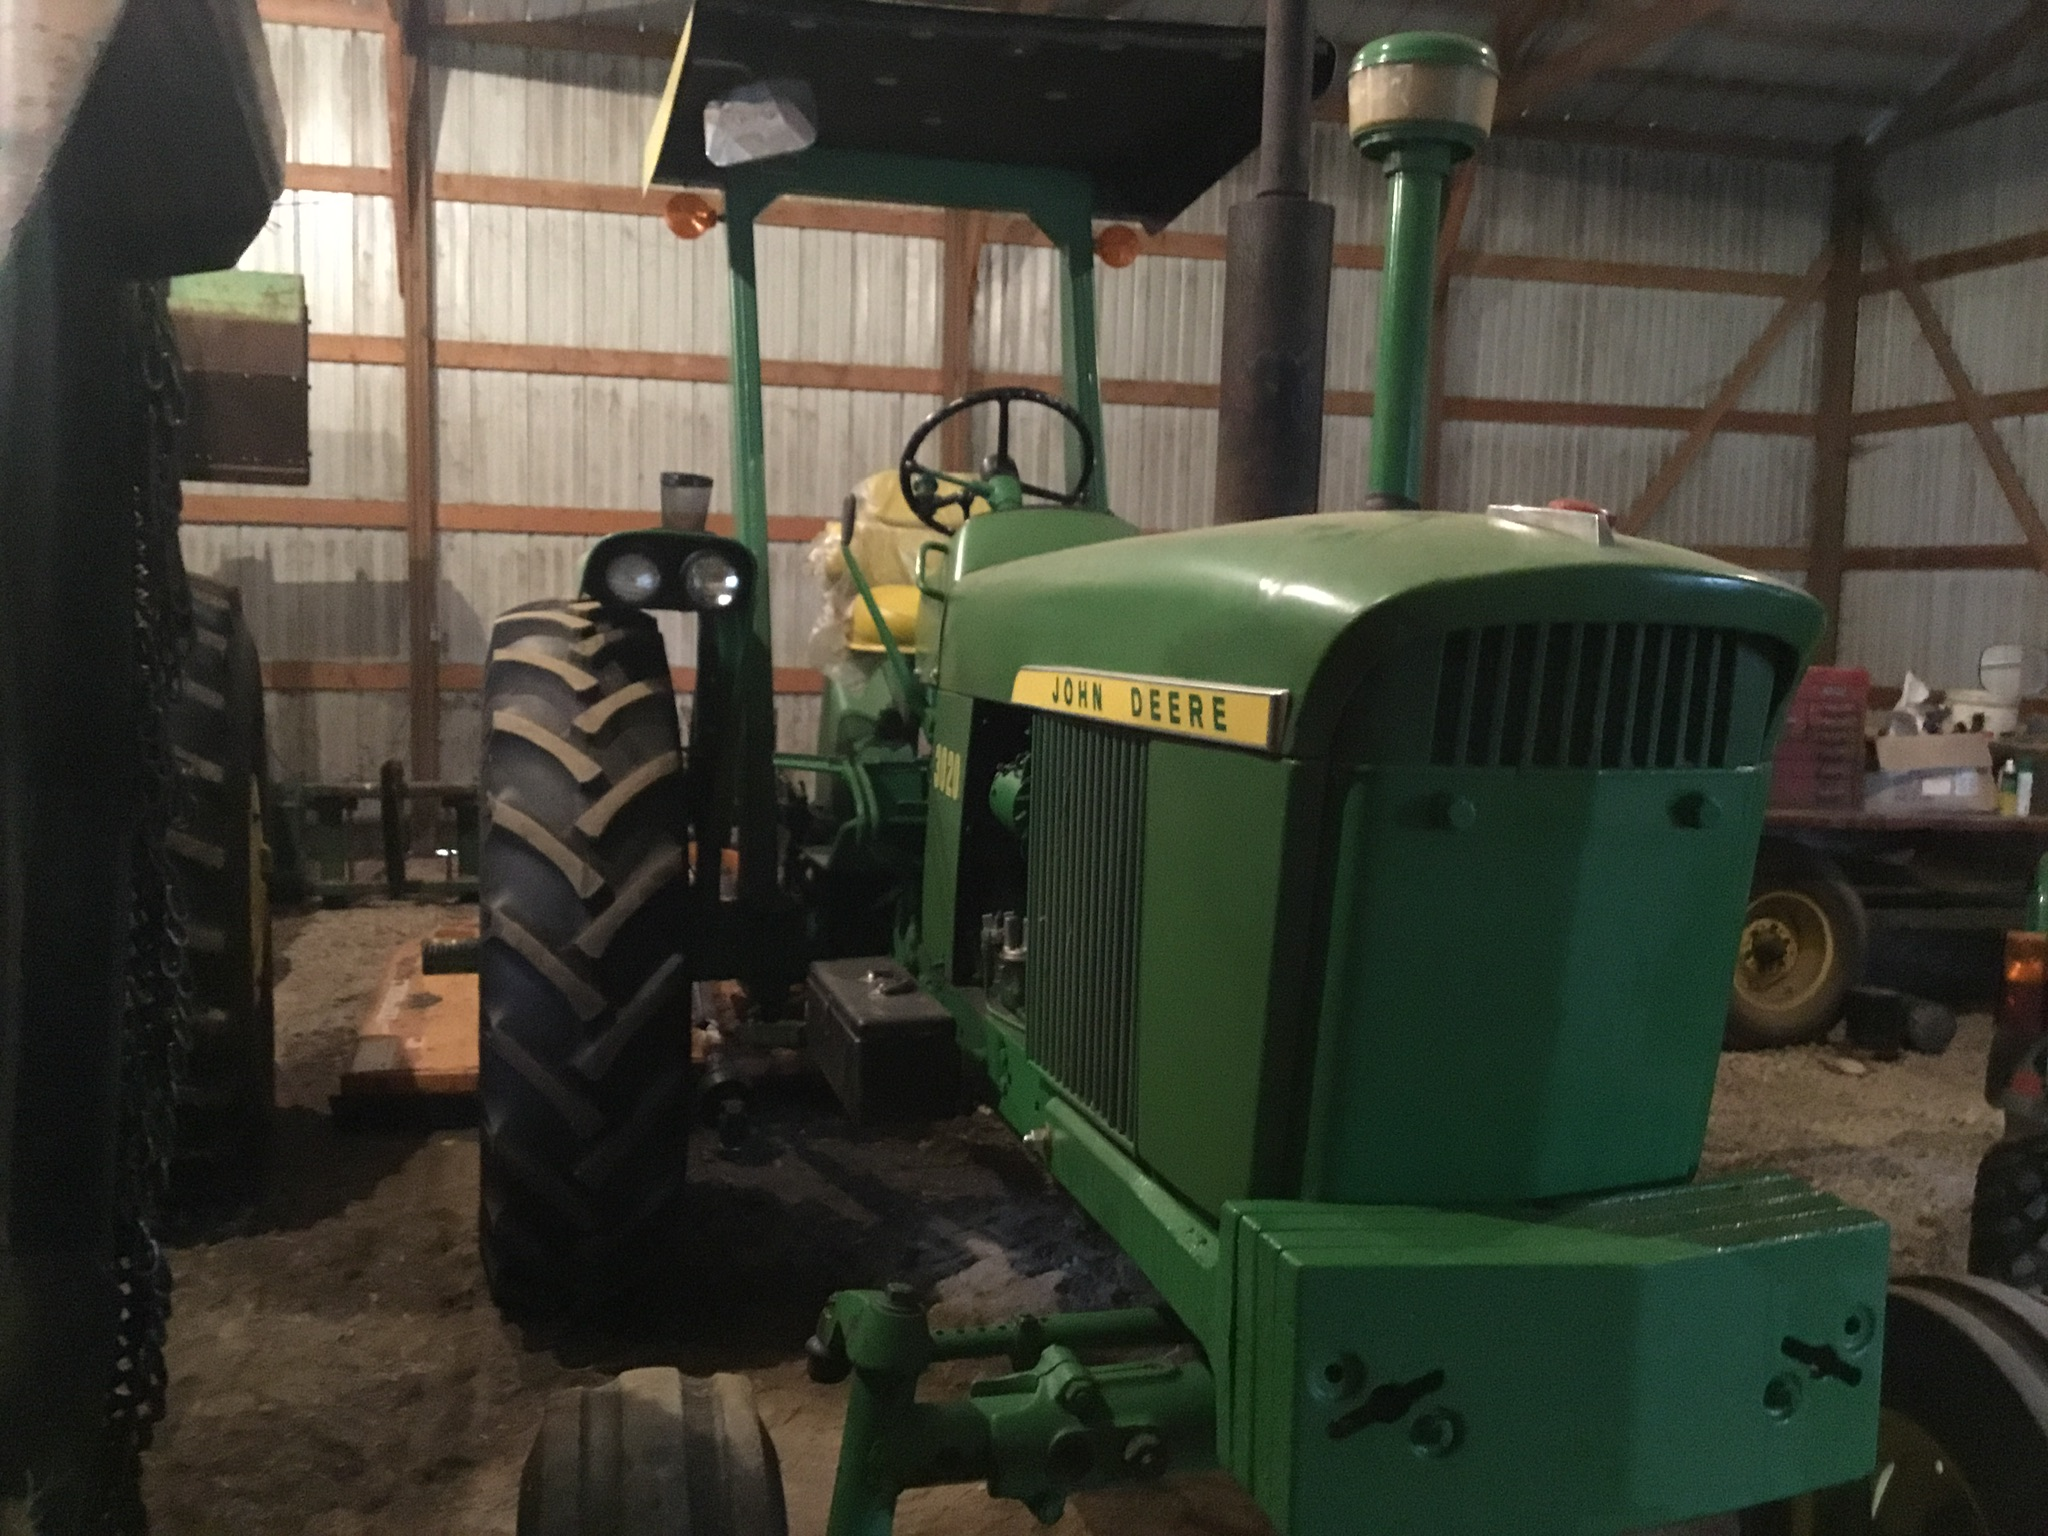 1966 John Deere 3020 Gas, JD Wide Front, Synchro Range, Roll Bar & Canopy, Dual Hydraulic Remotes, - Image 10 of 13